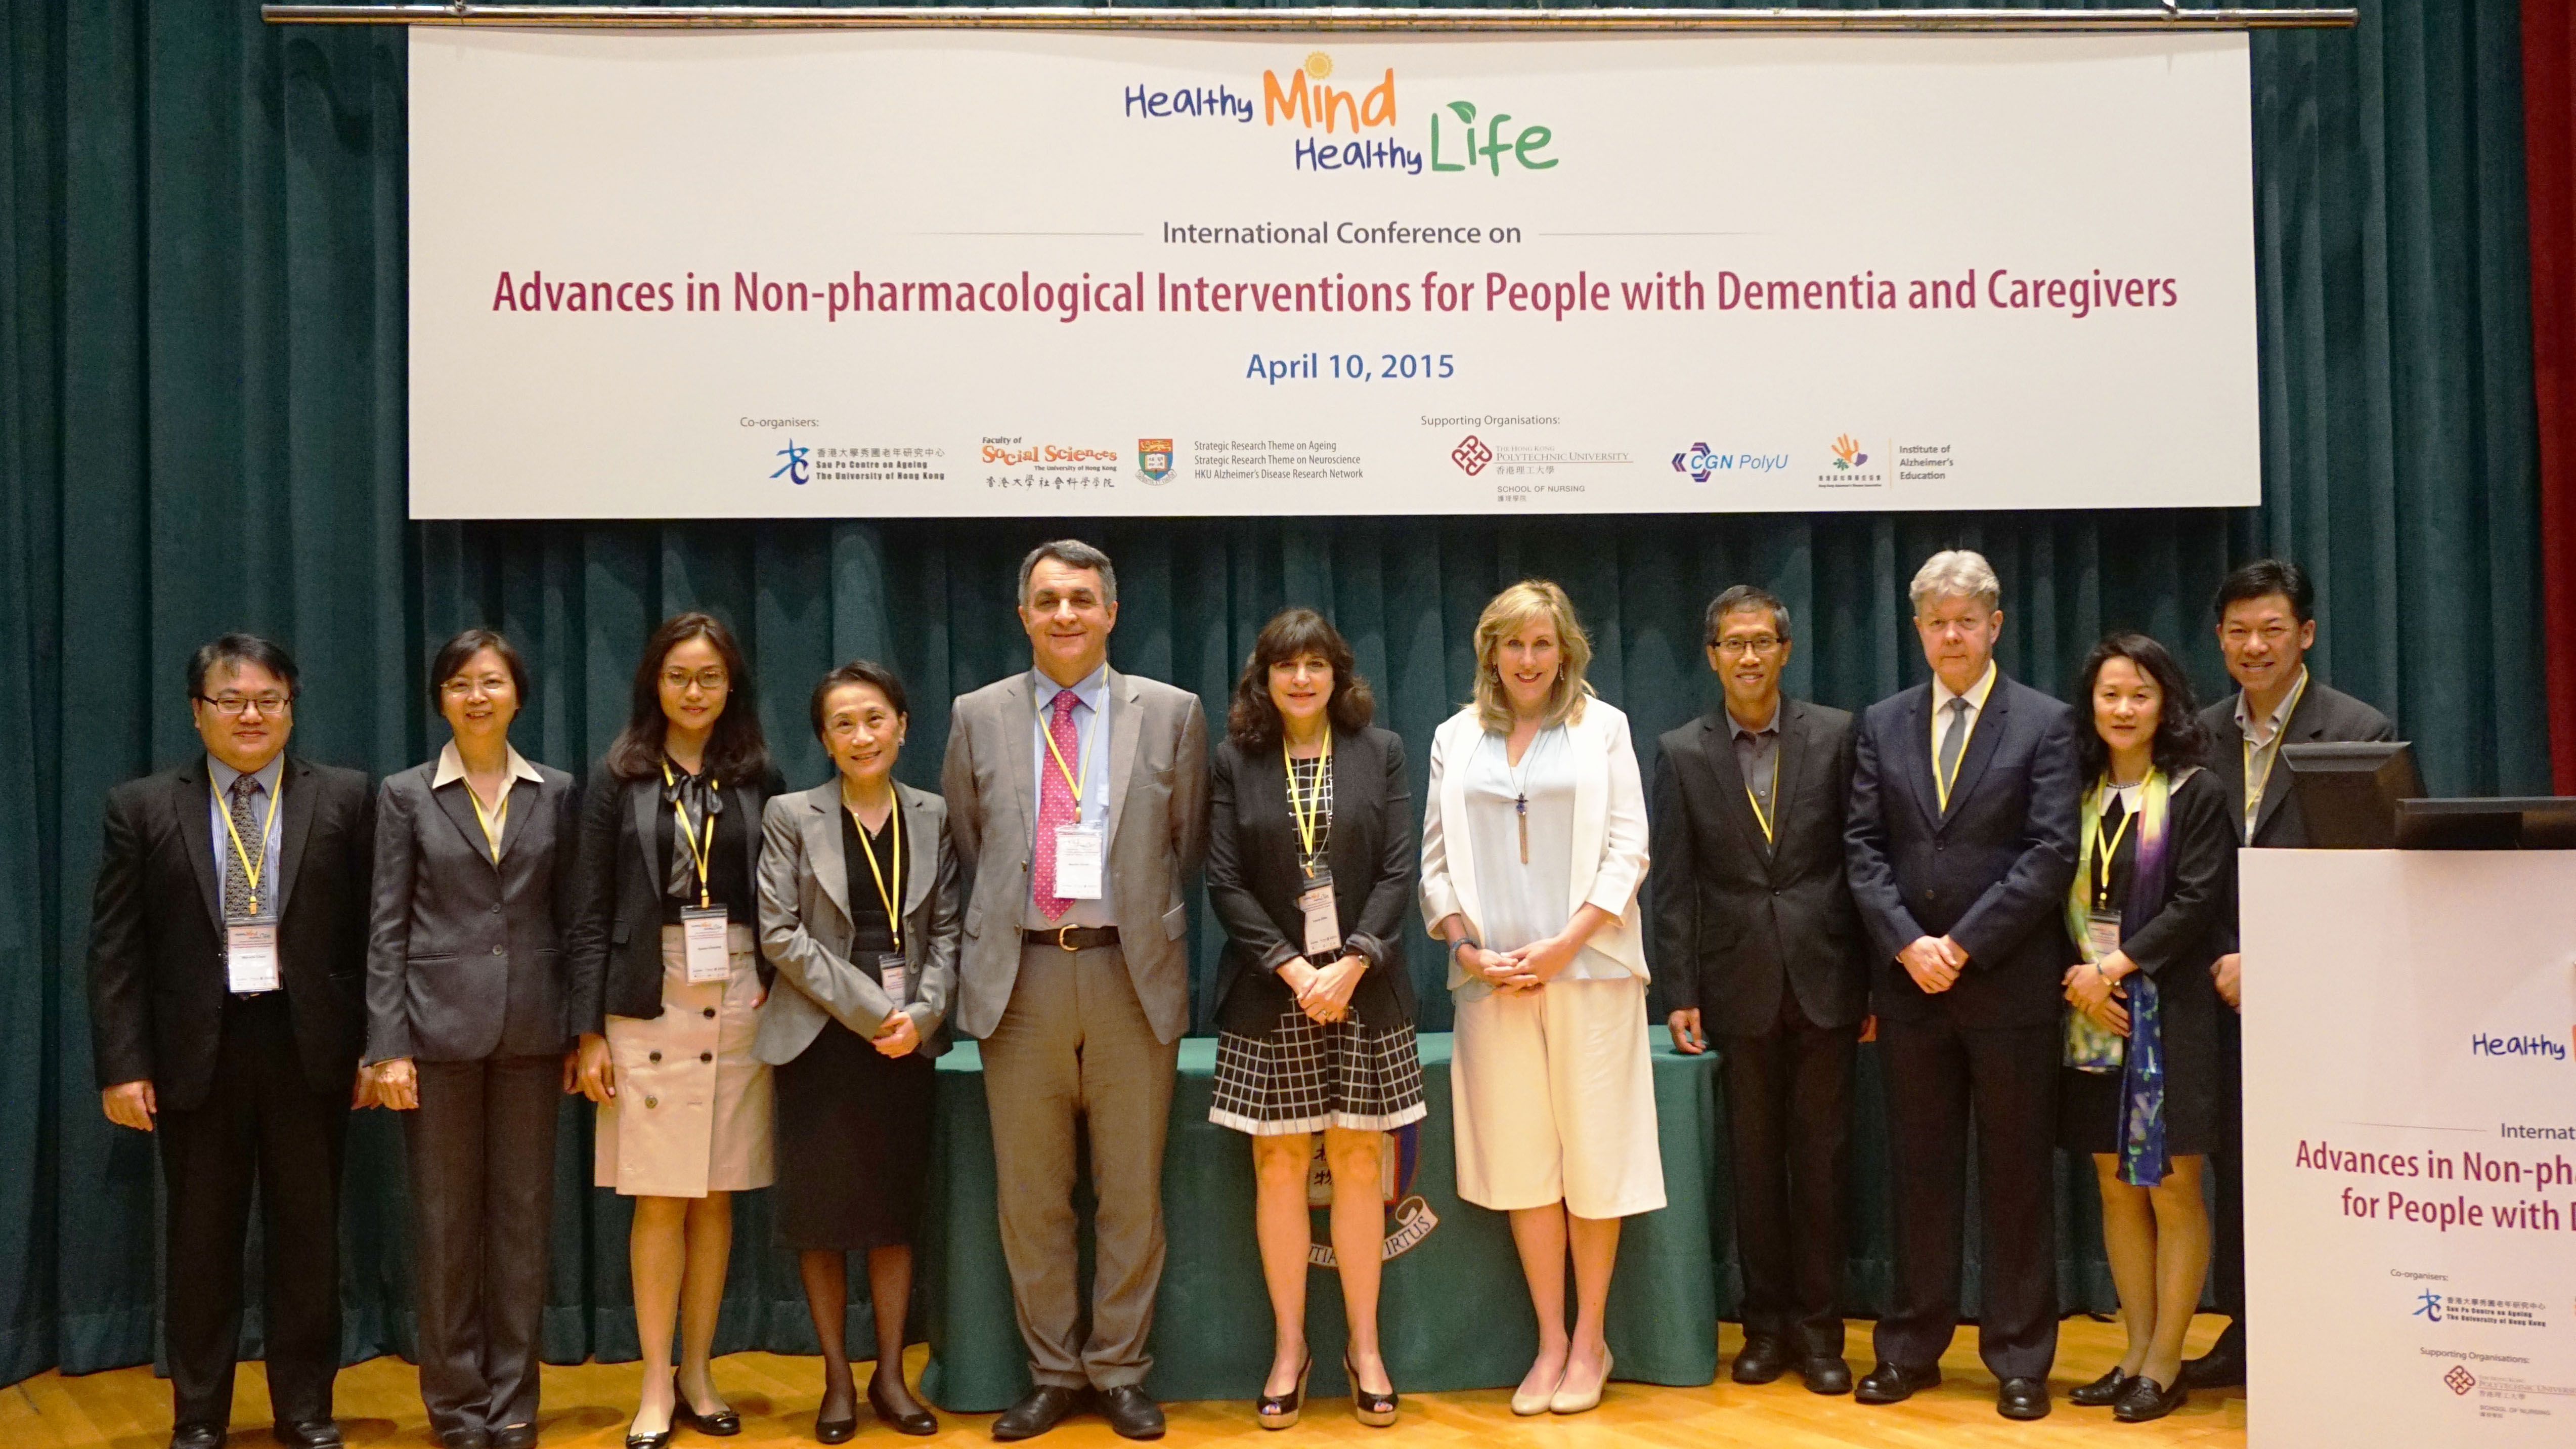 International Conference on Advances in Non-pharmacological Interventions for People with Dementia and Caregivers